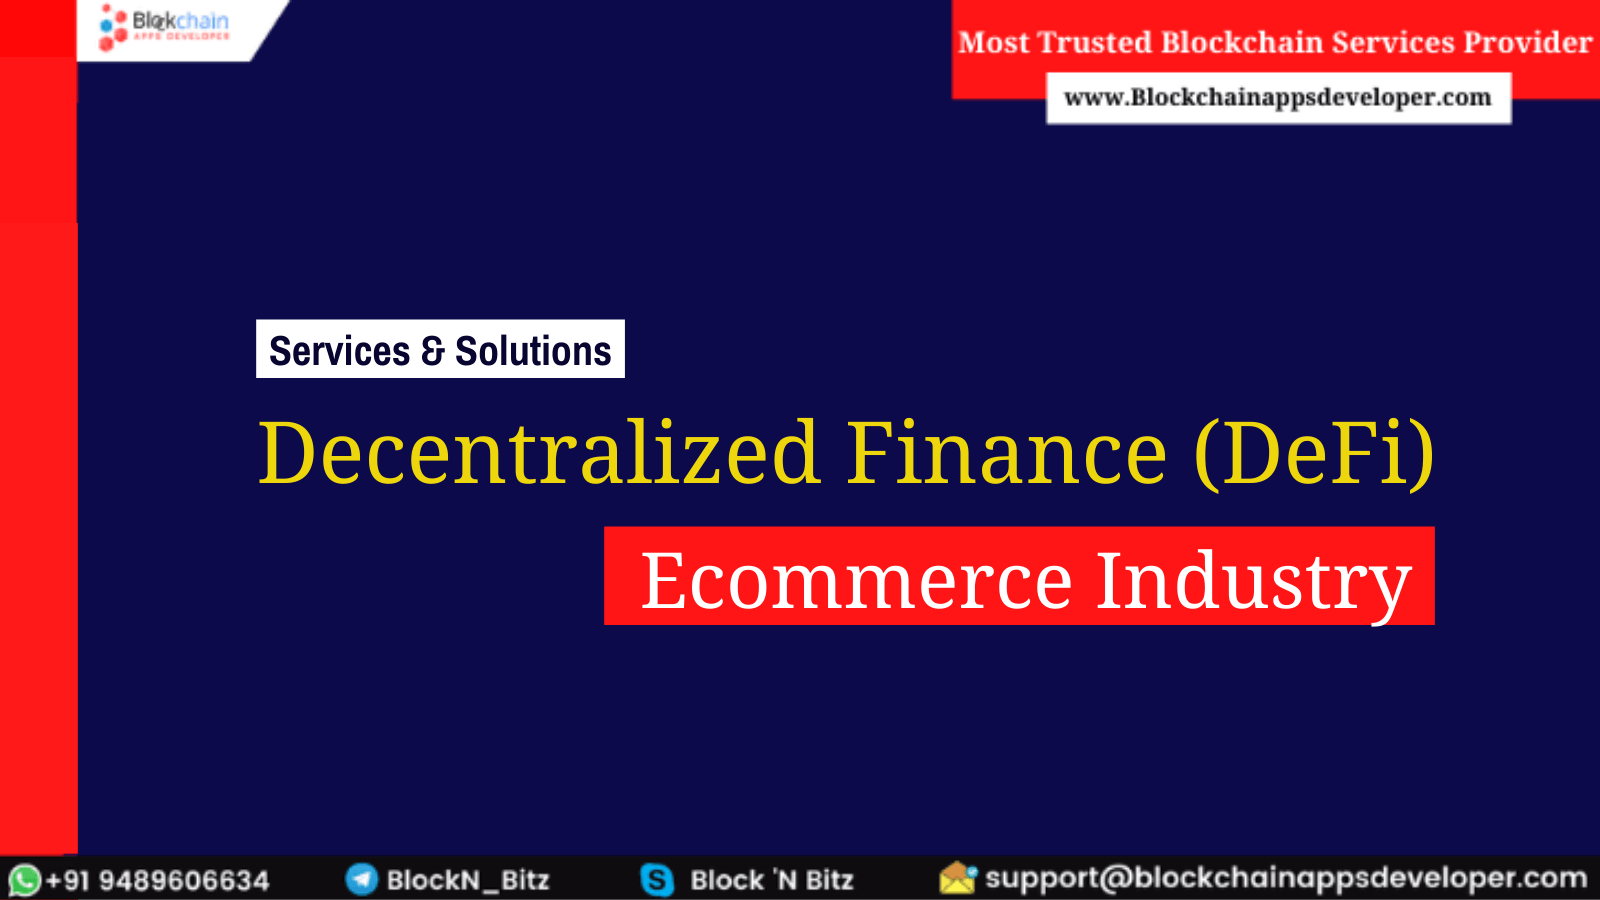 How Decentralized Finance (DeFi) can improve the E-commerce Sector?